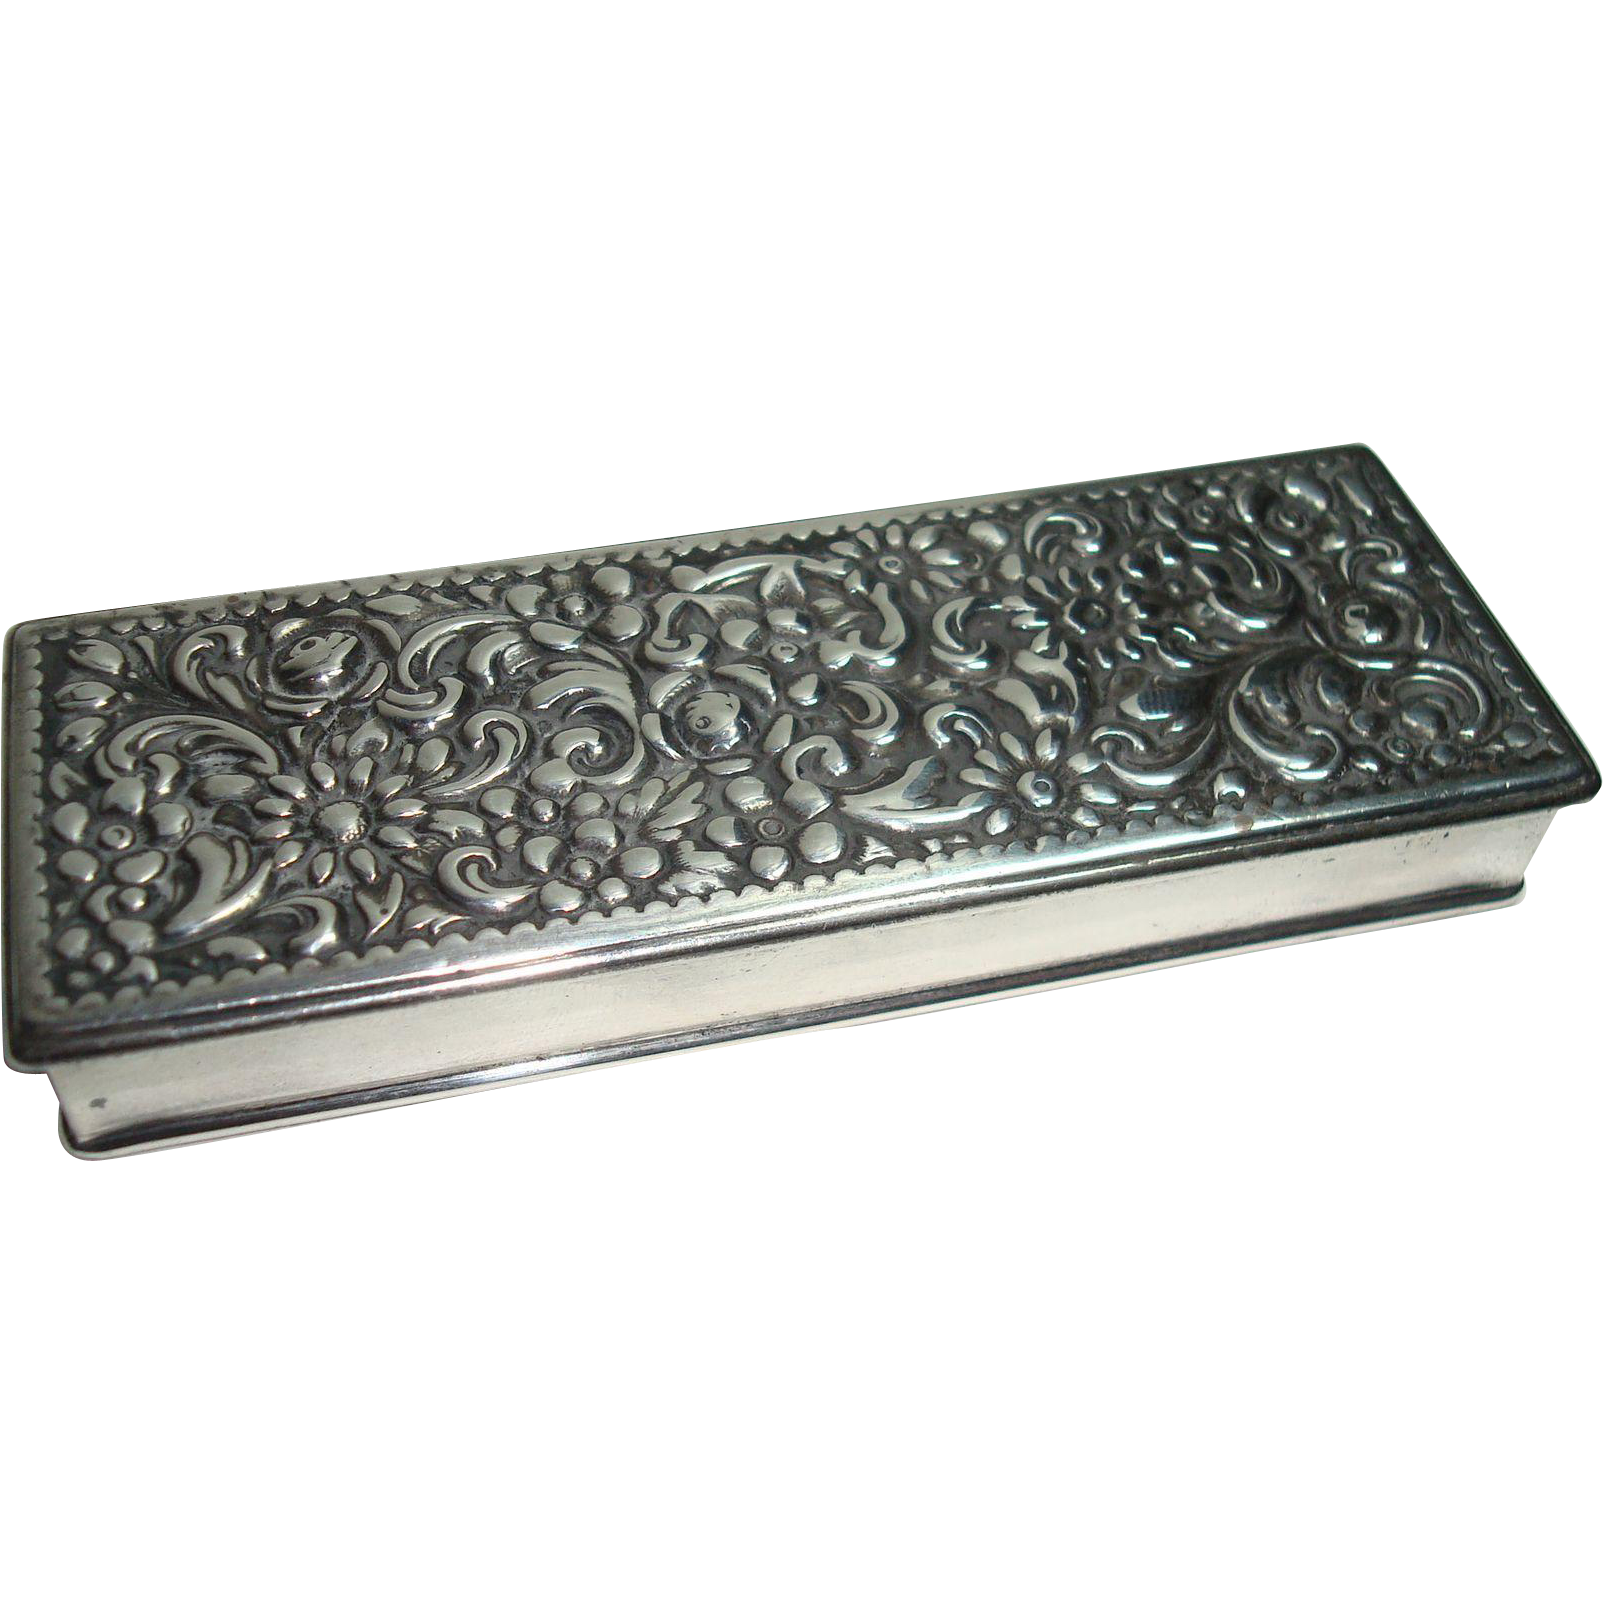 Wm. Durgin Sterling Repousse Floral Leaf and Acanthus Stamp Box